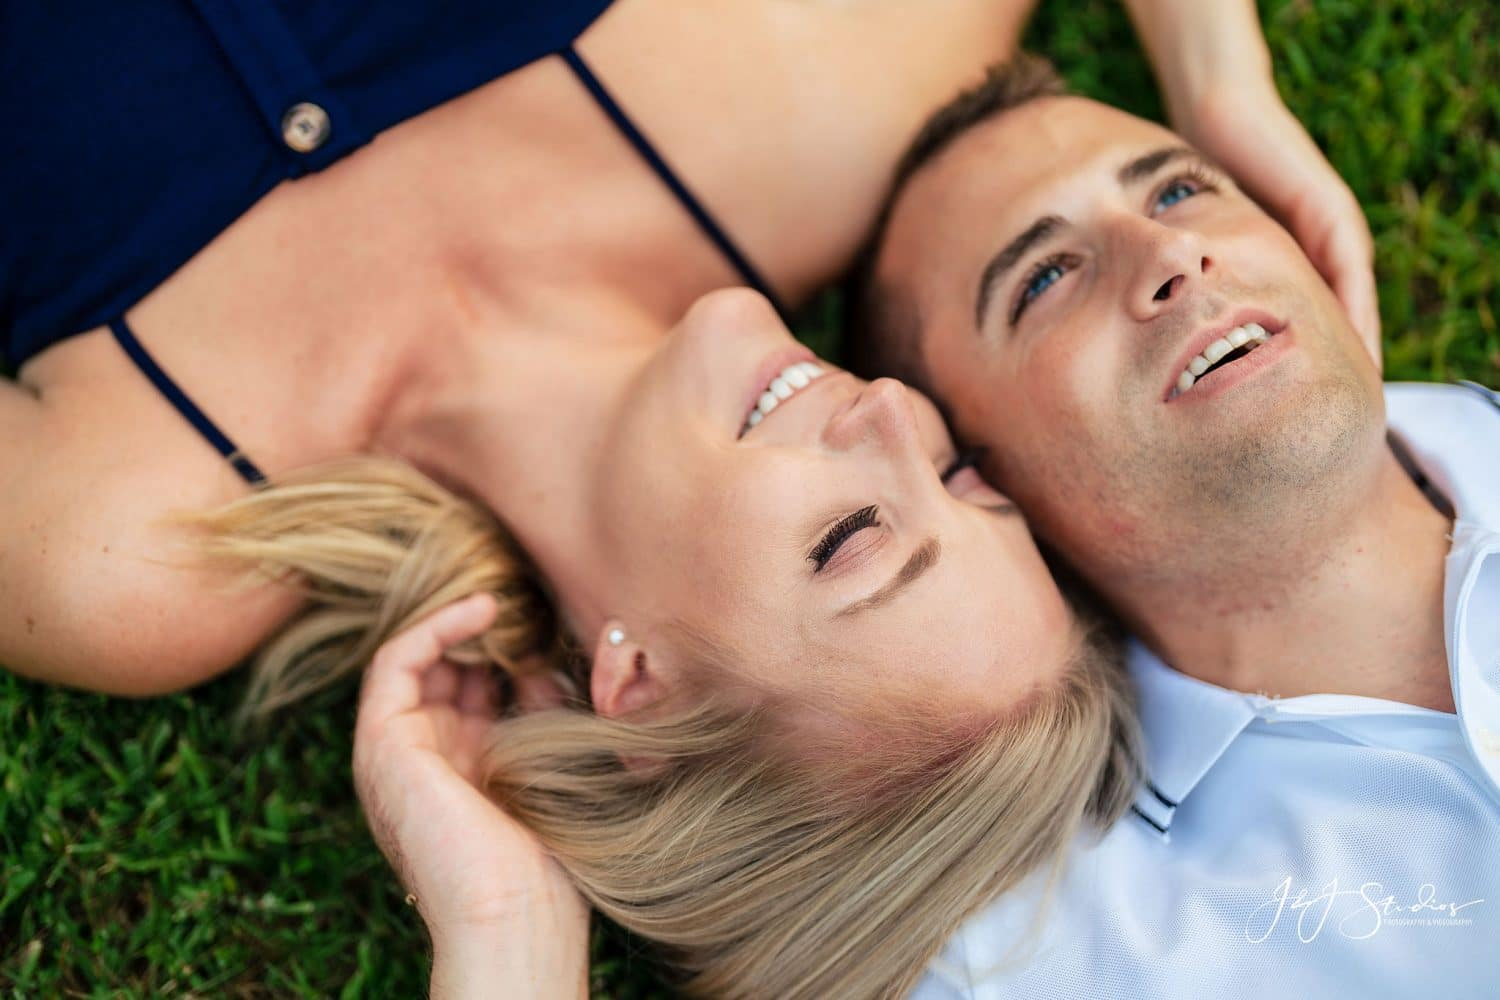 Laying in the grass by J&J Studios